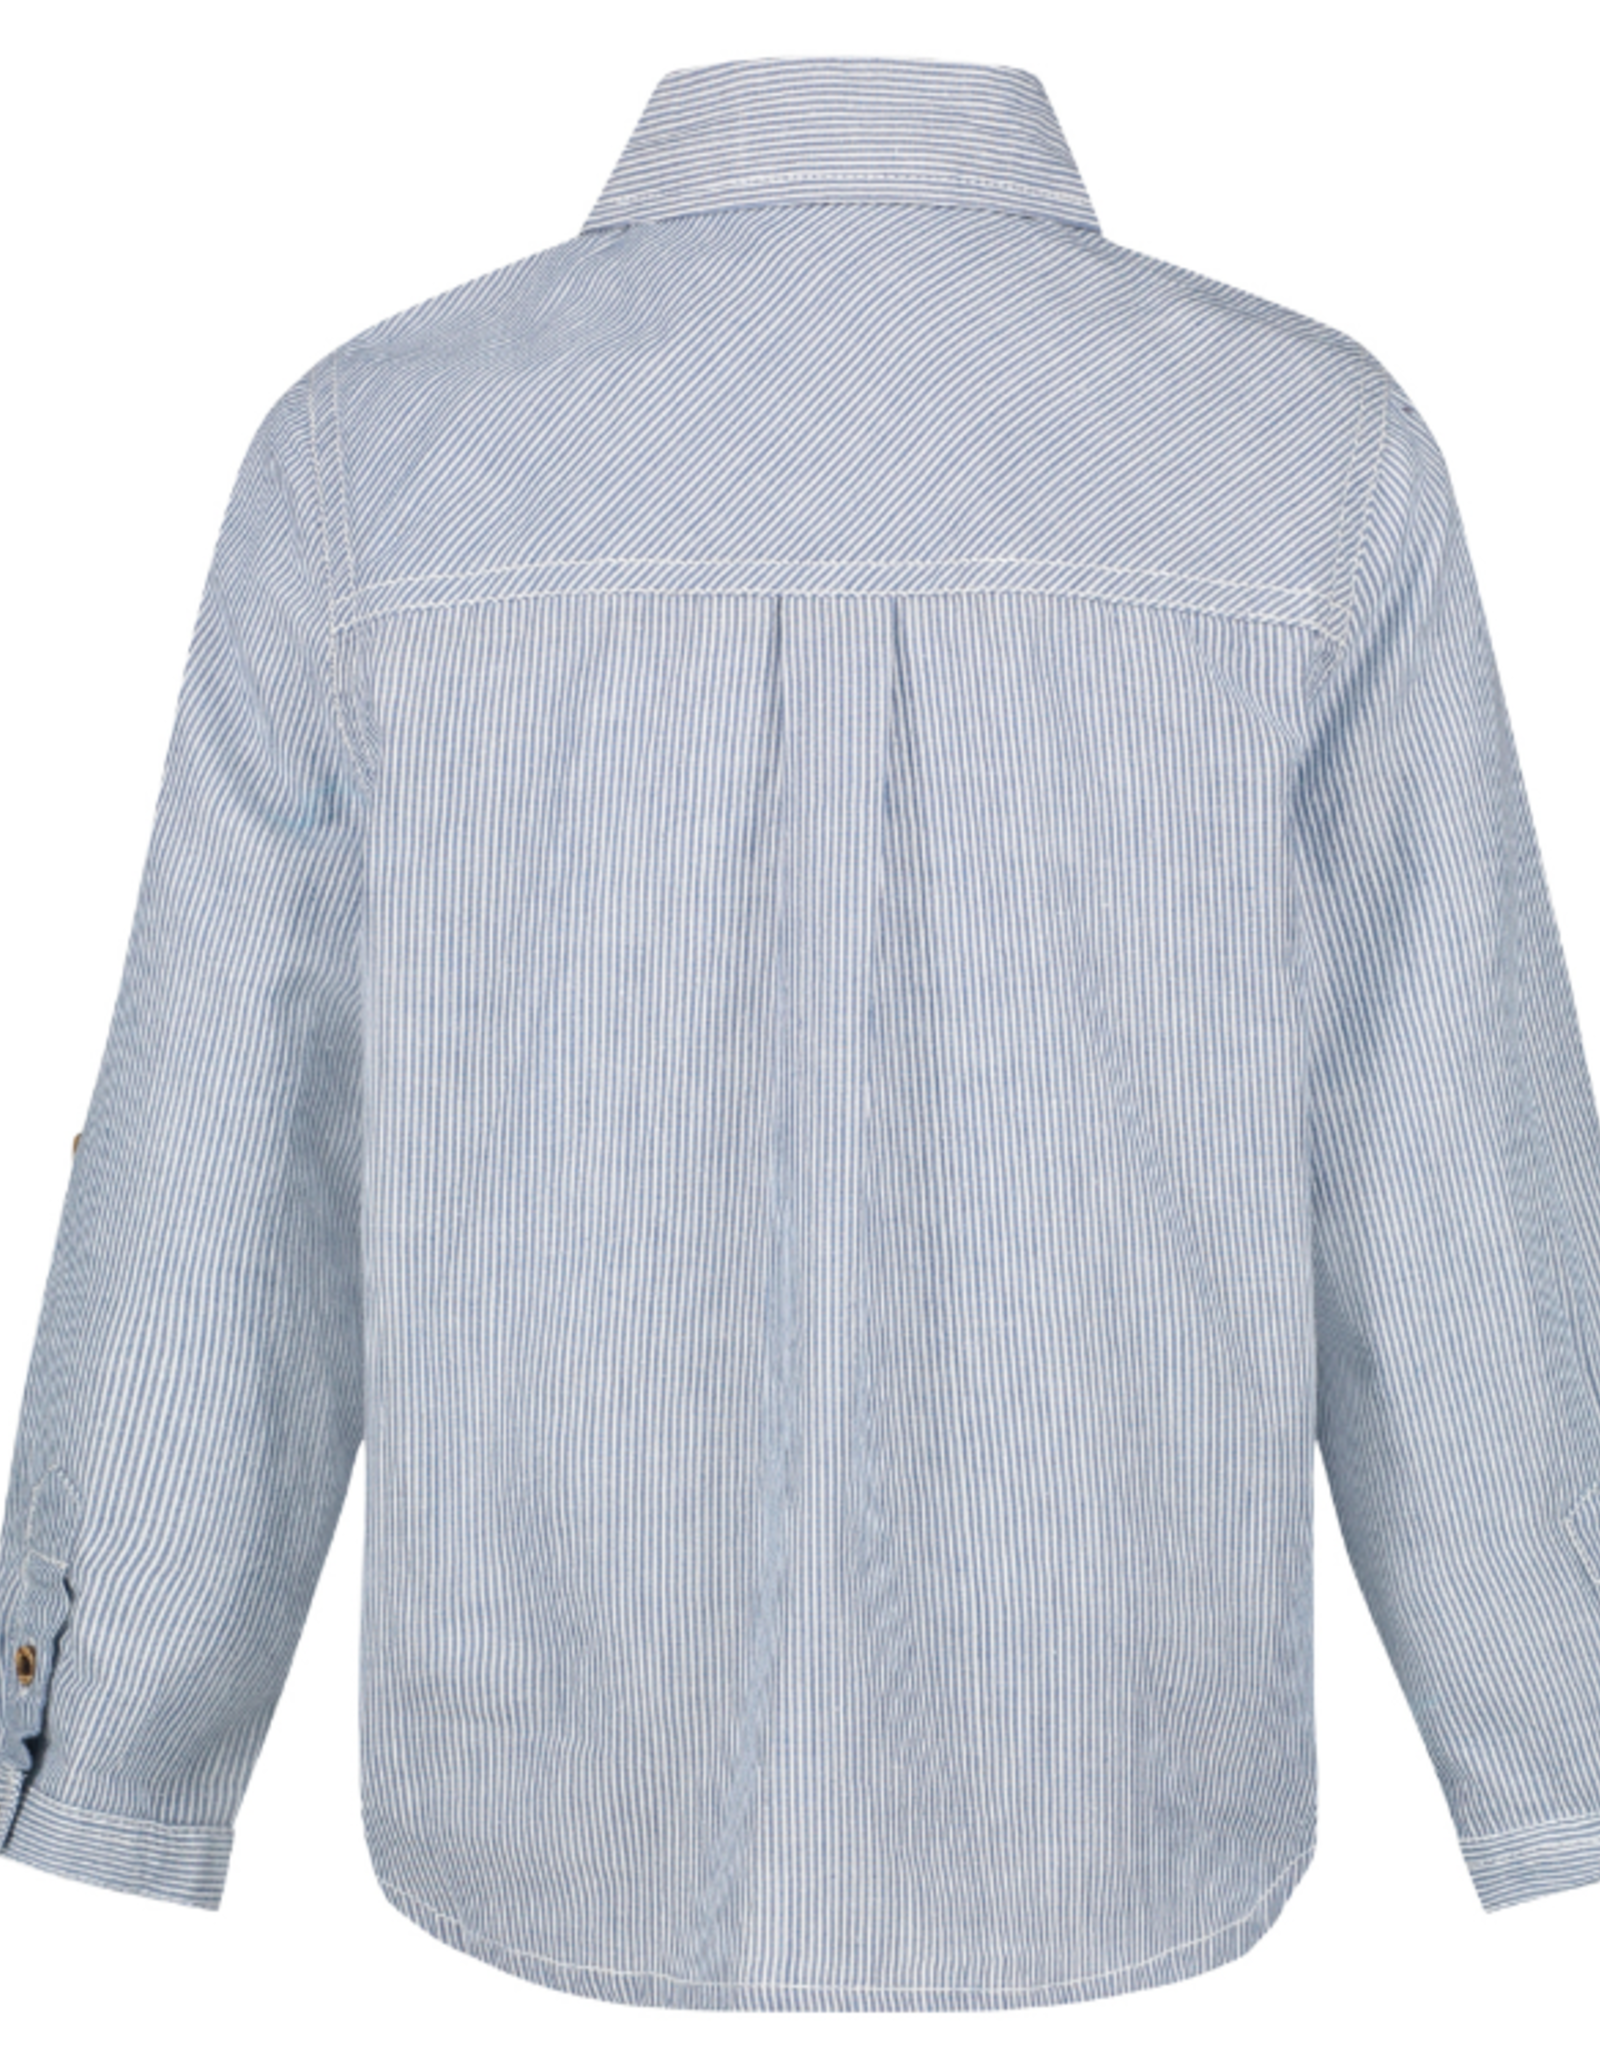 noppies Noppies - B L/S Shirt - Mims